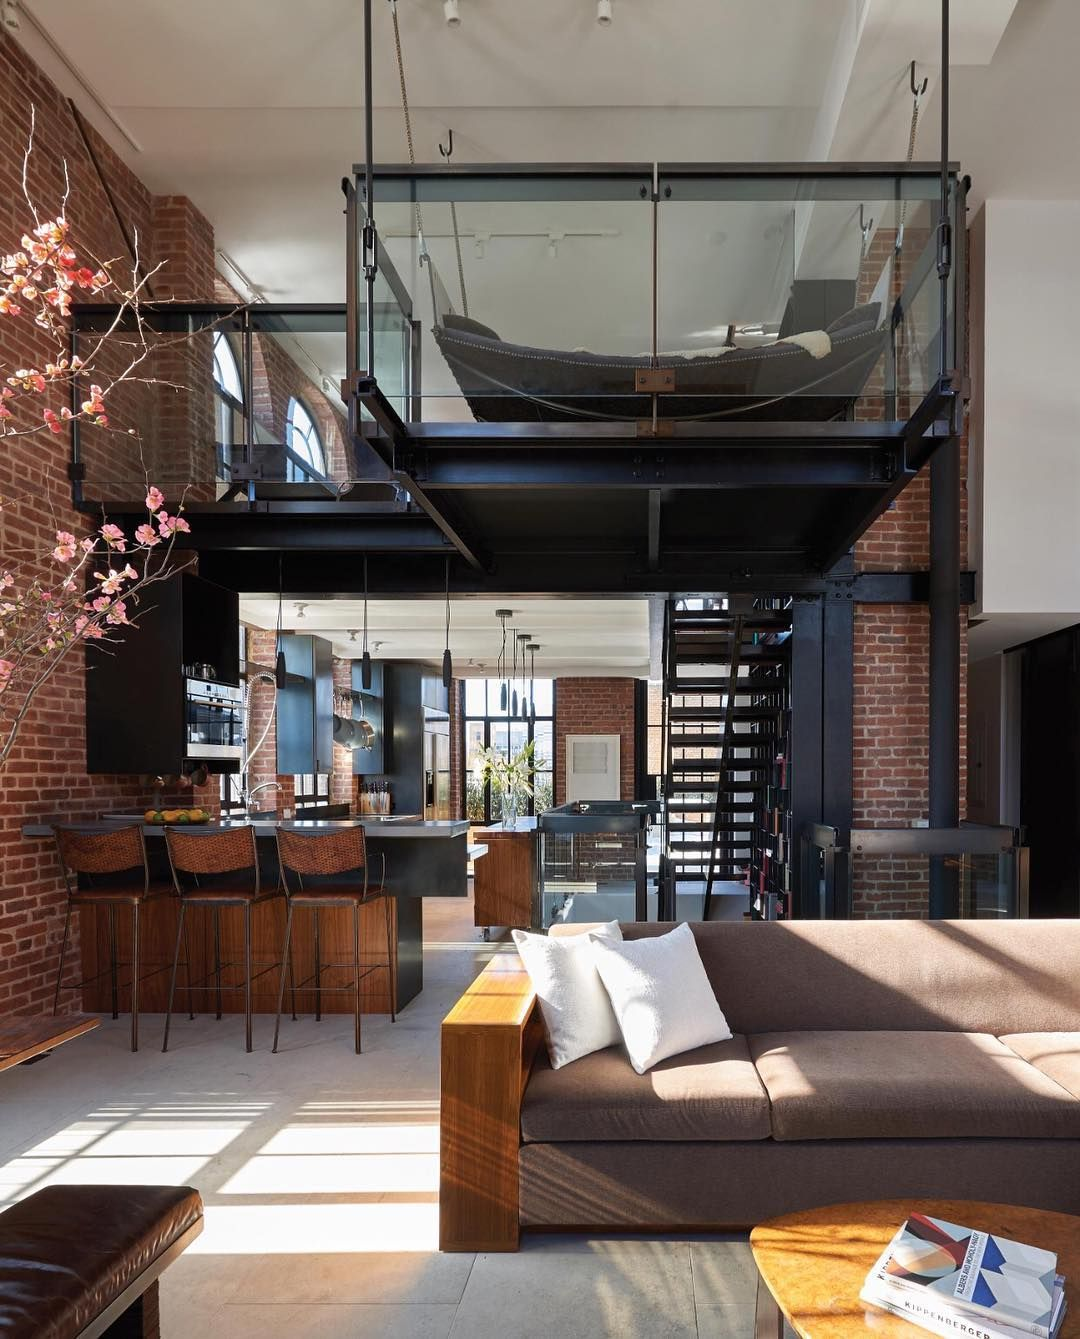 new york new york an old water tower converted into a penthouse loft by olson kundig. Black Bedroom Furniture Sets. Home Design Ideas